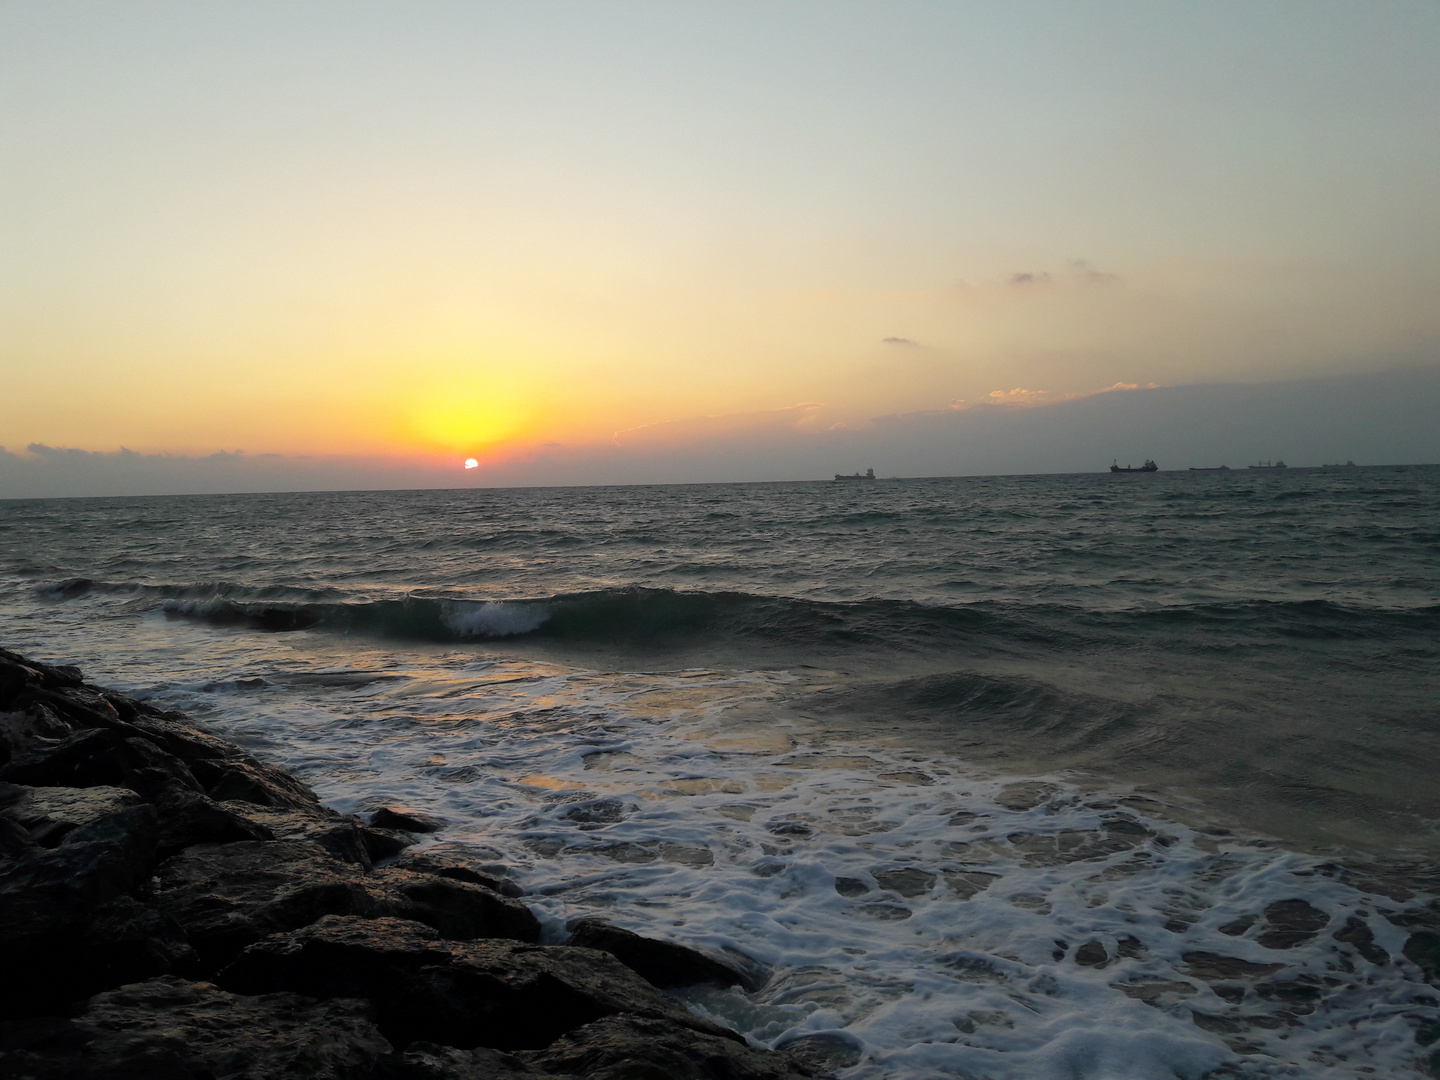 The Sunset in iskenderon